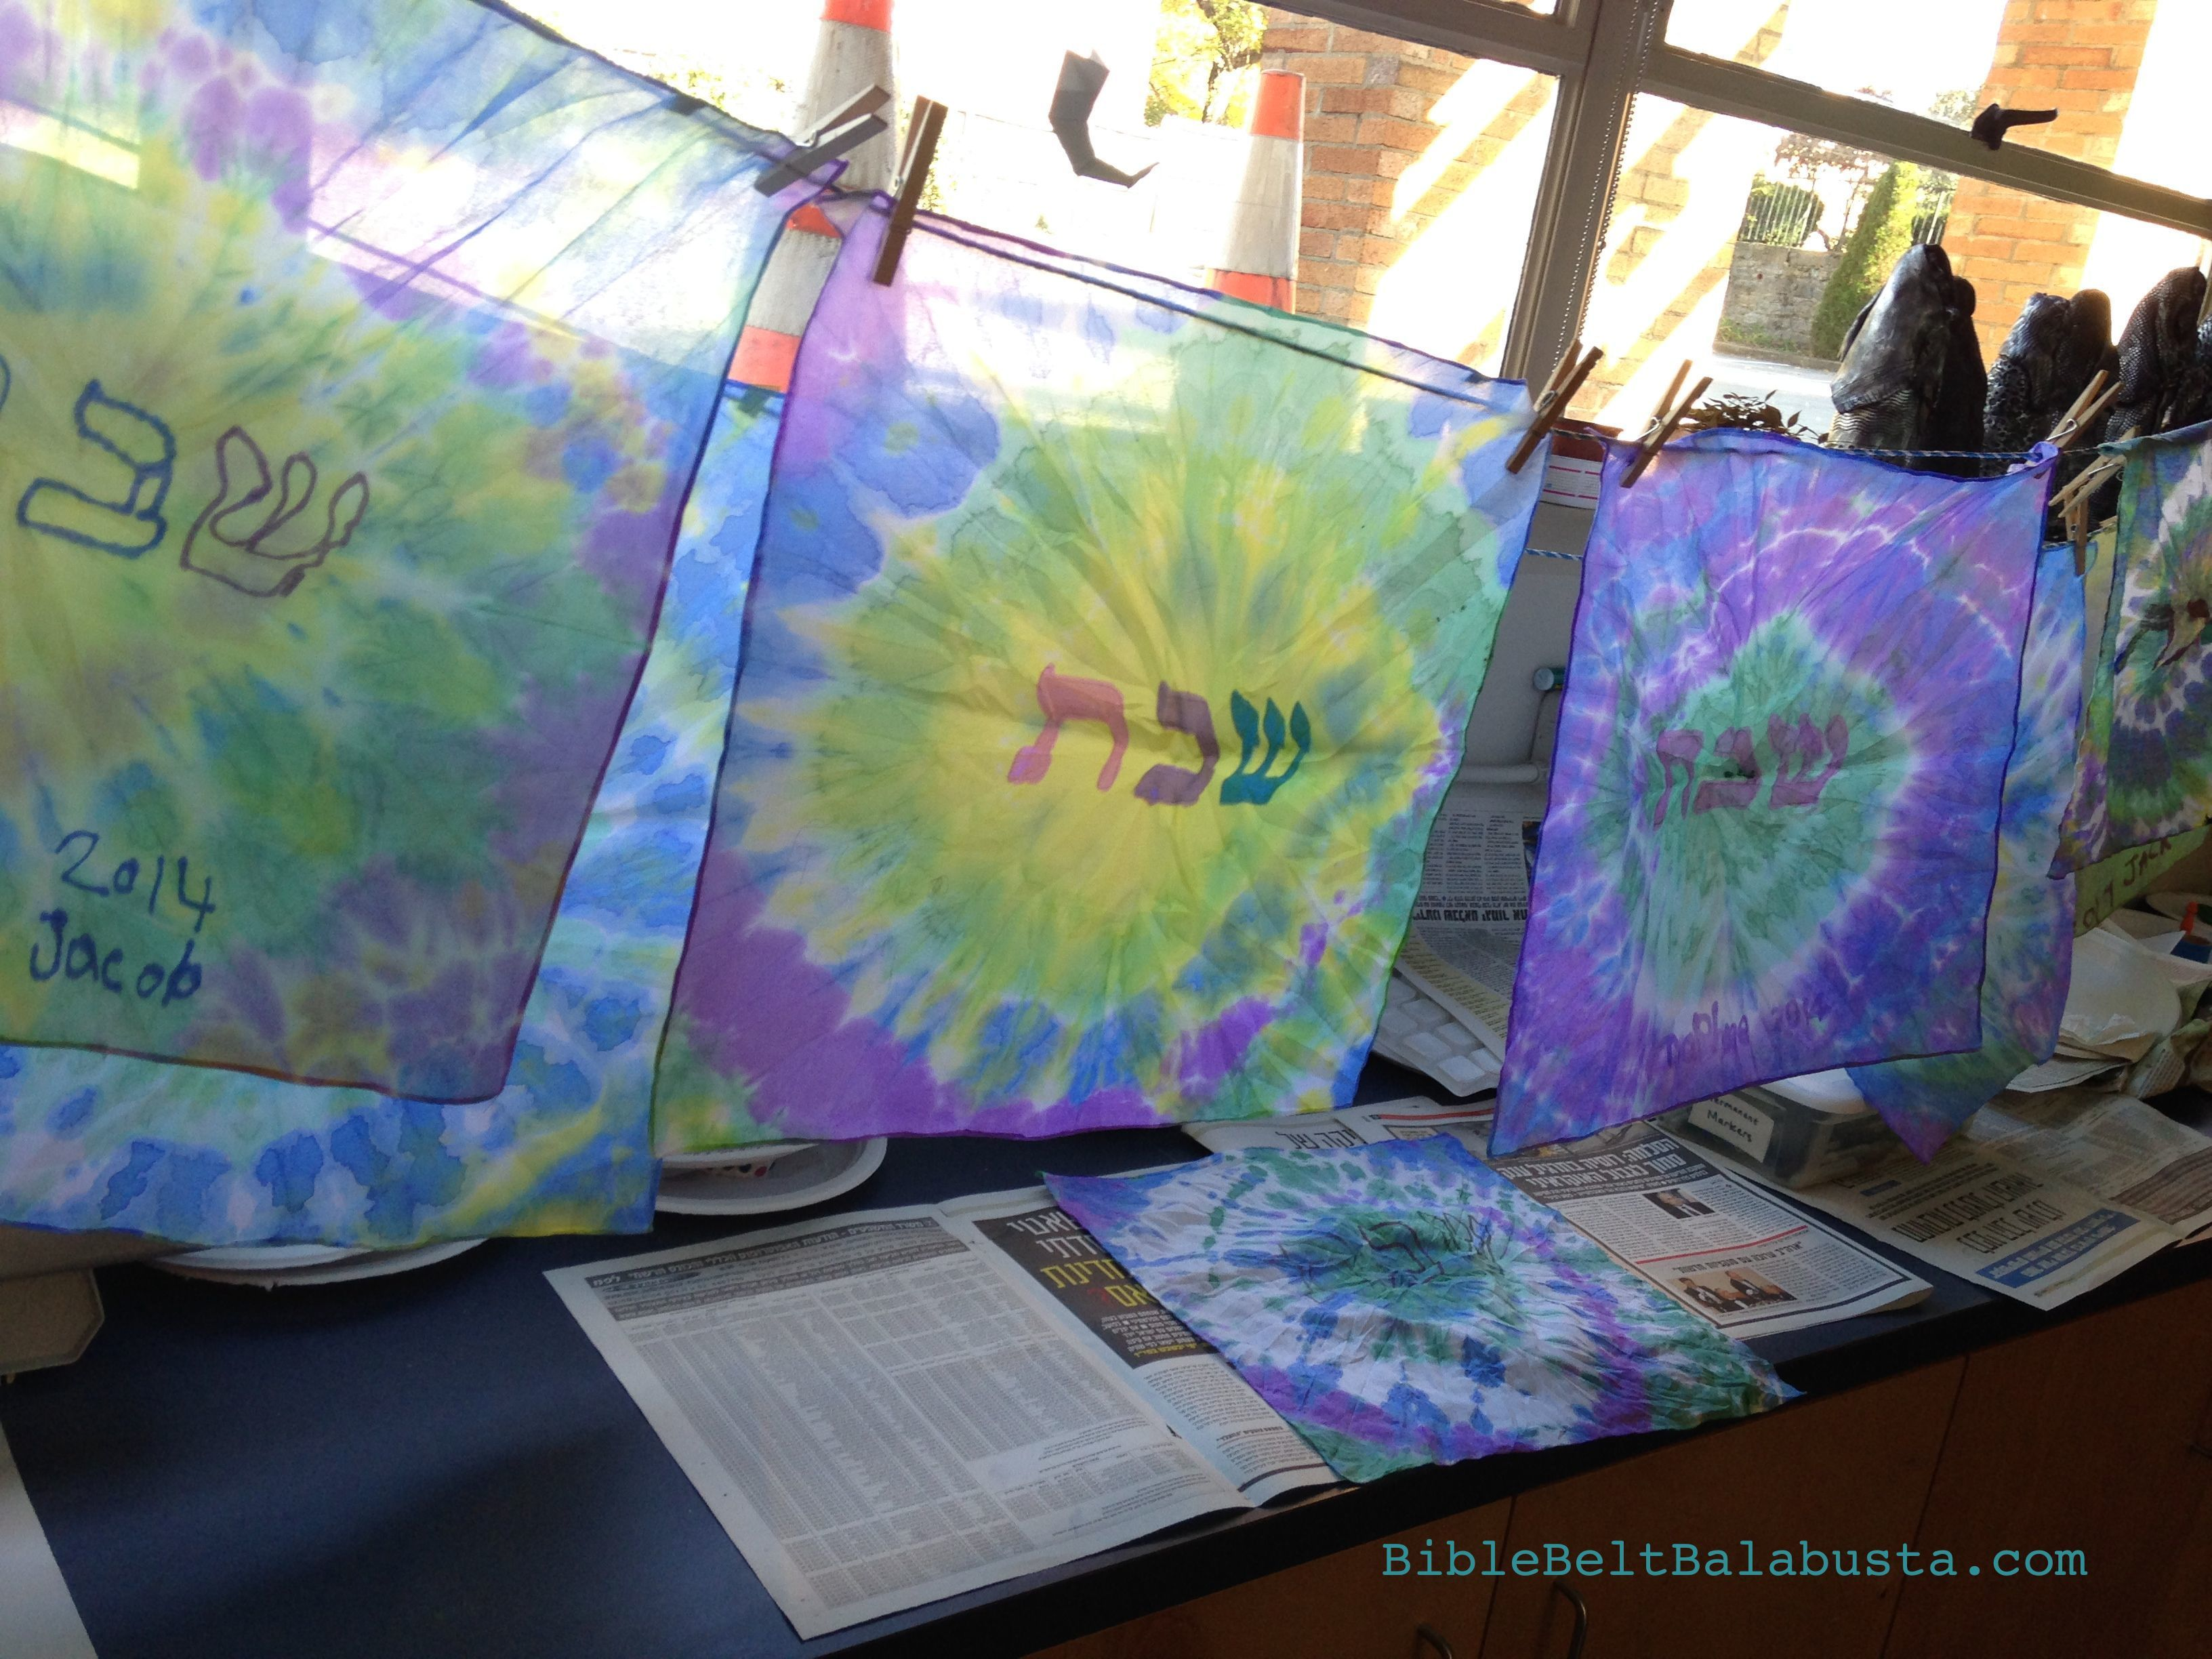 How to make fabric dye - Did You Know You Can Sort Of Make Fabric Dye With Acrylic Paint